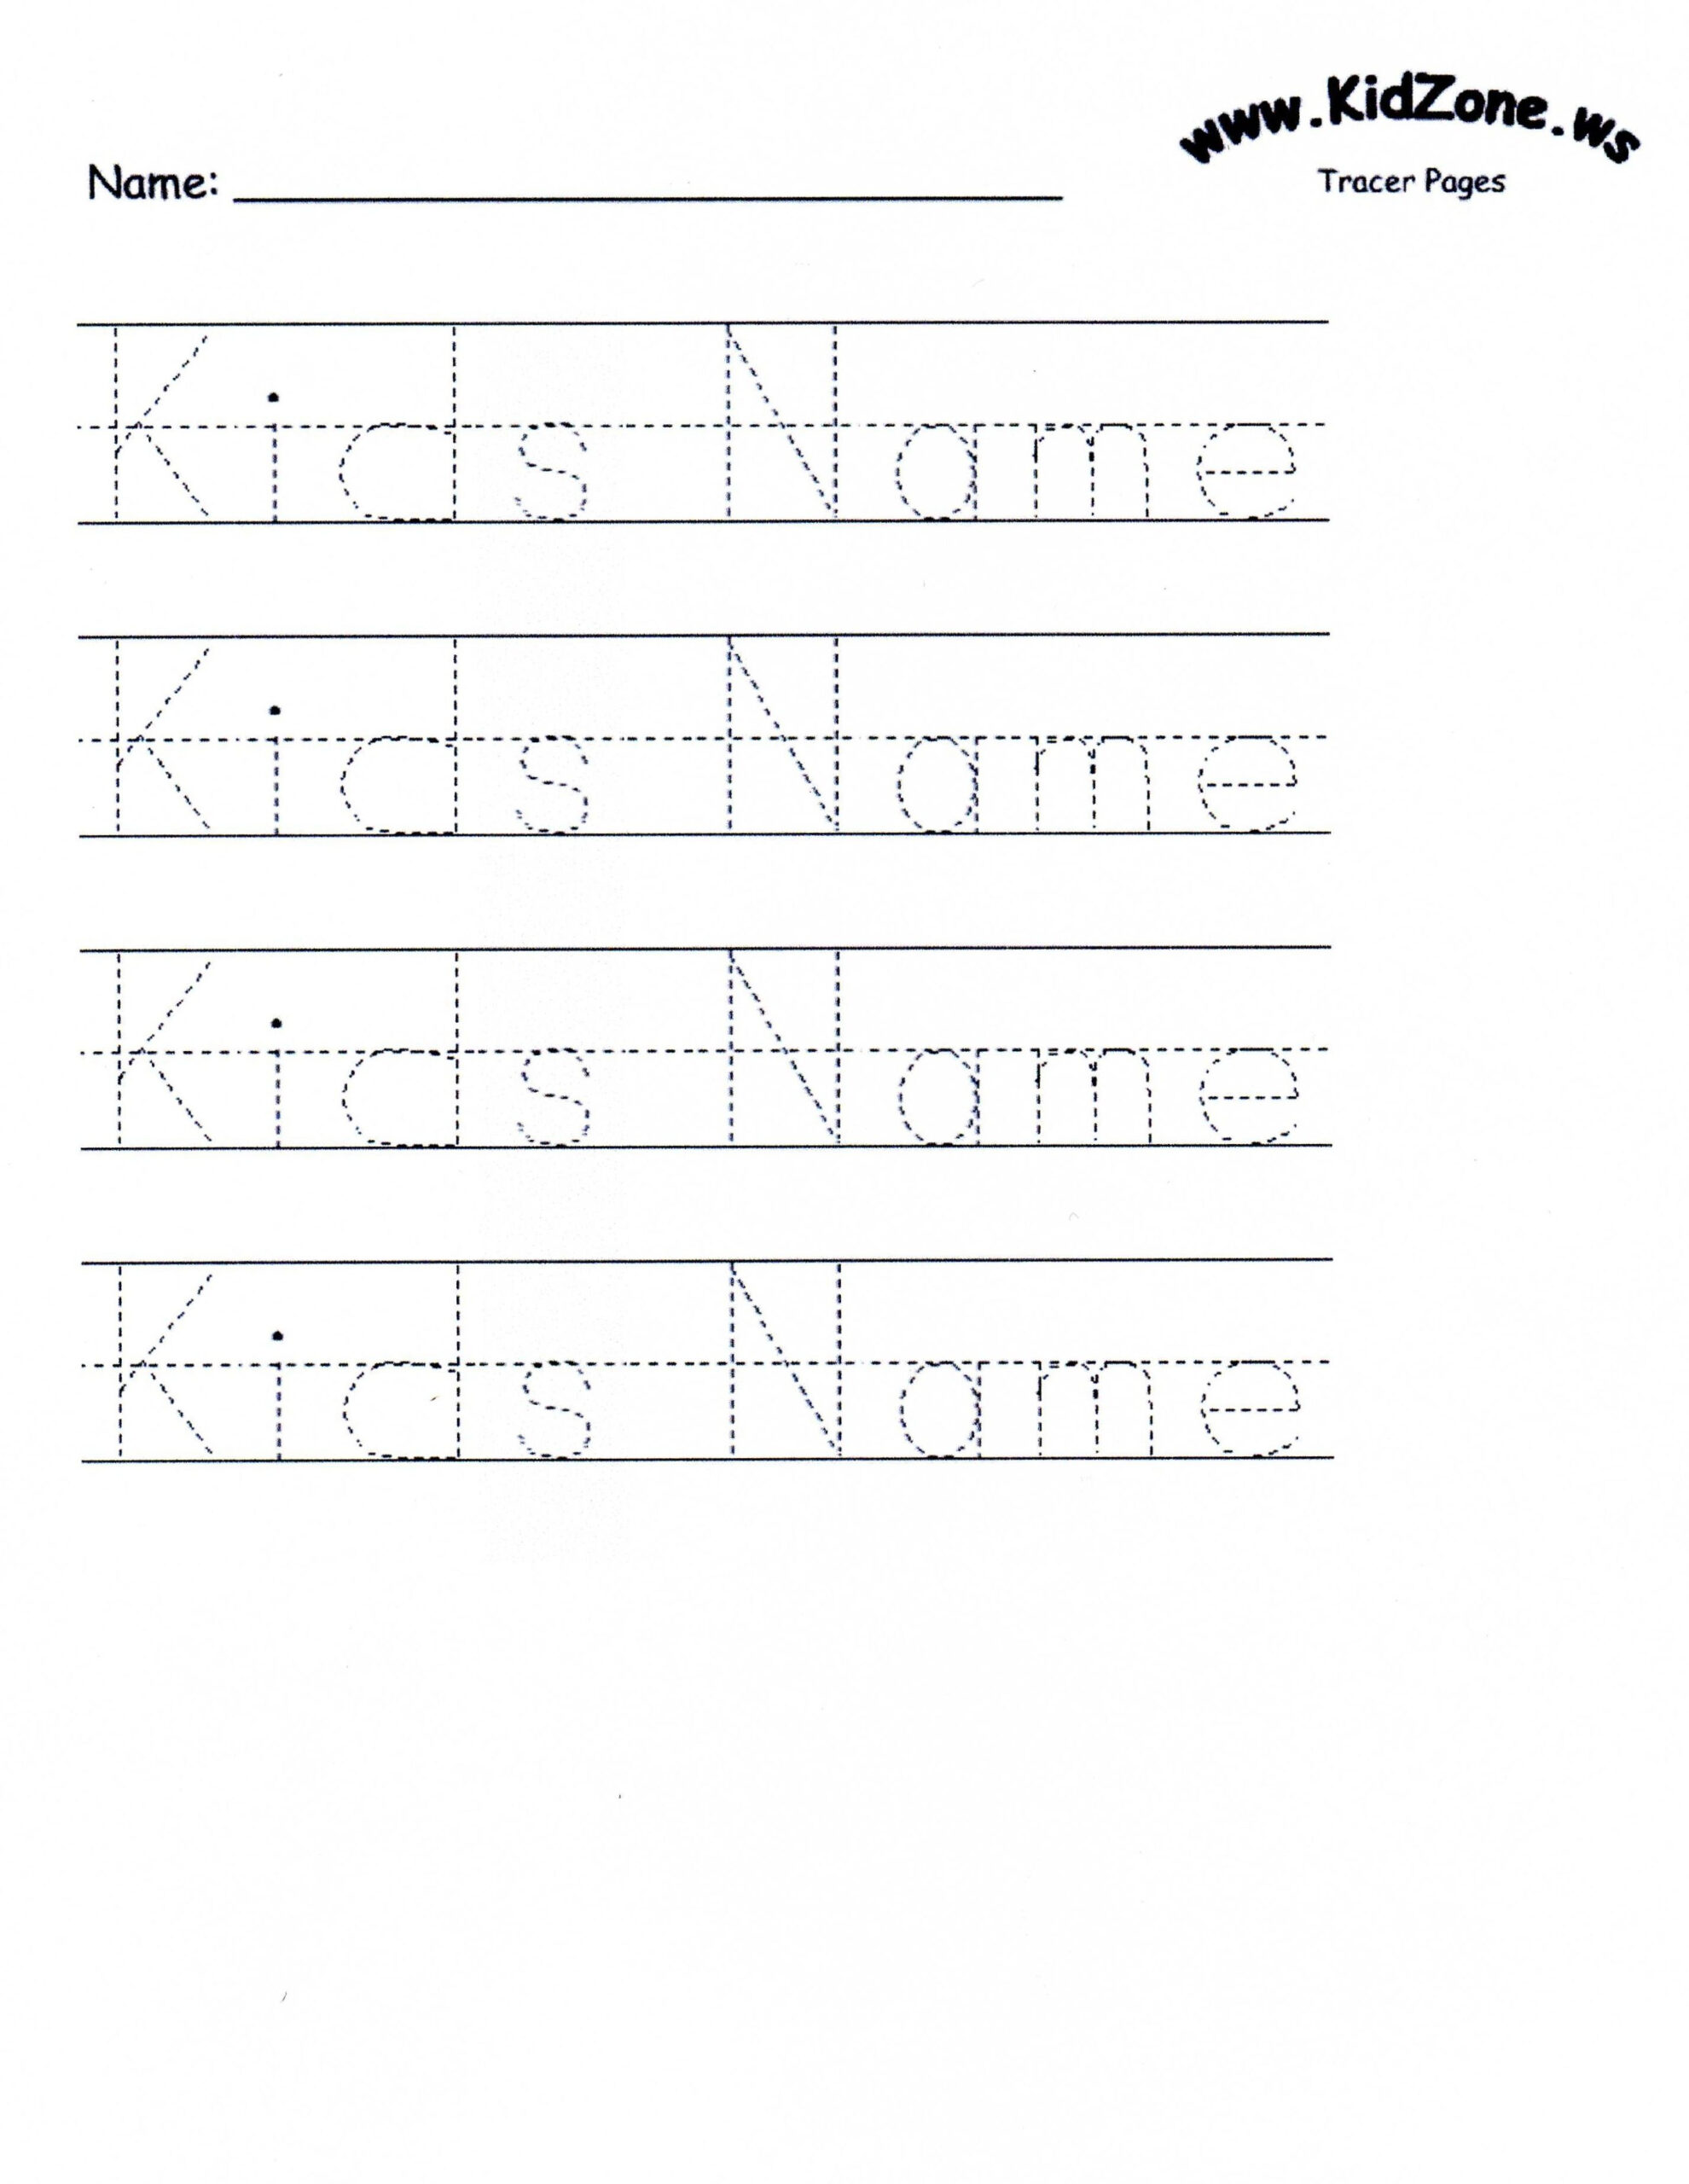 Custom Tracer Pages | Tracing Worksheets Preschool, Name in Name Tracing Worksheet With Blank Lines